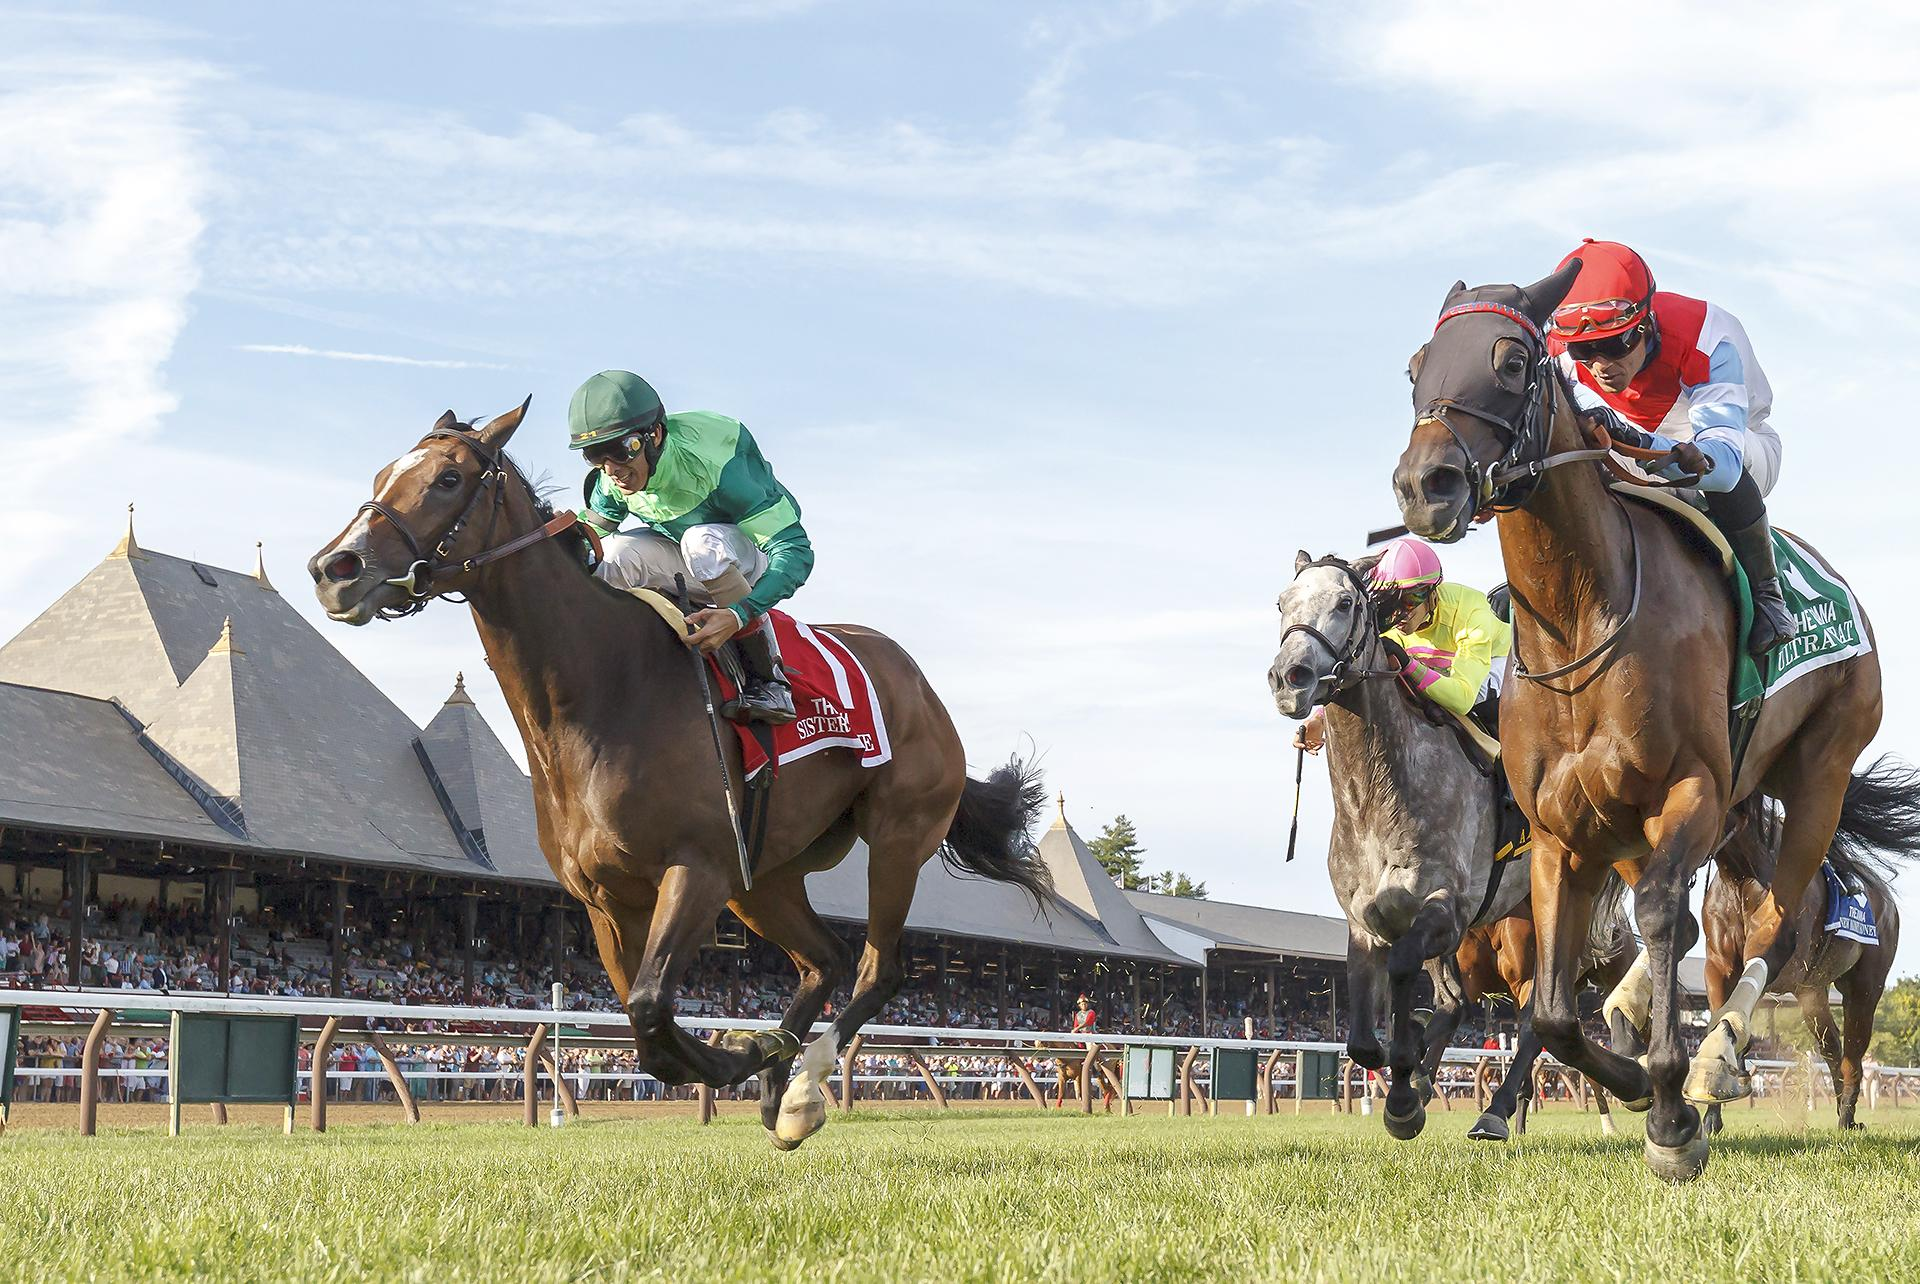 Sistercharlie and Ultra Brat gave fans an exciting finish at Saratoga.